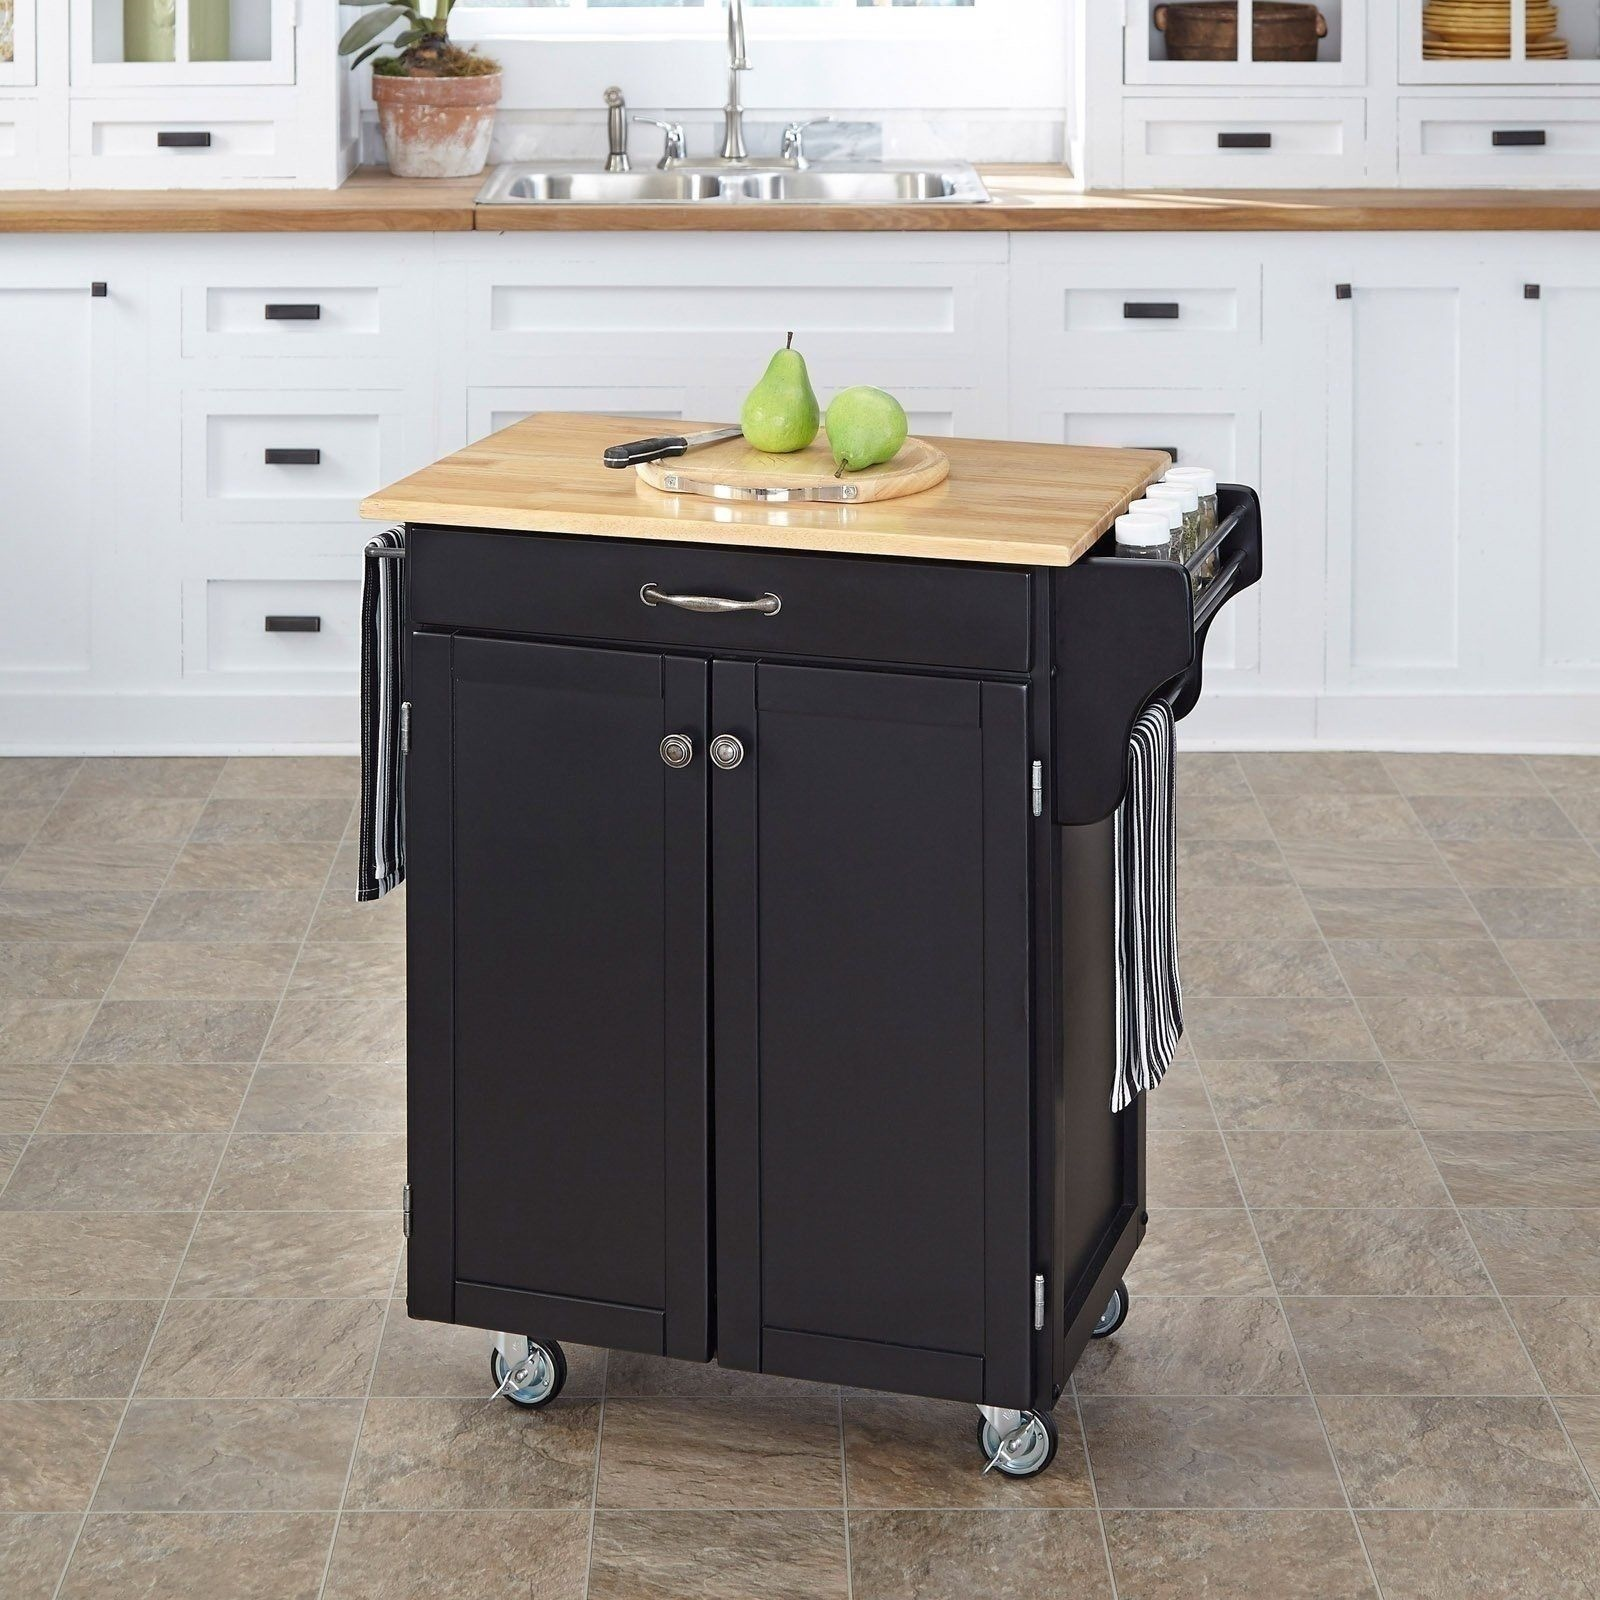 new wood kitchen trolley cart island butcher block cutting board table black nib ebay